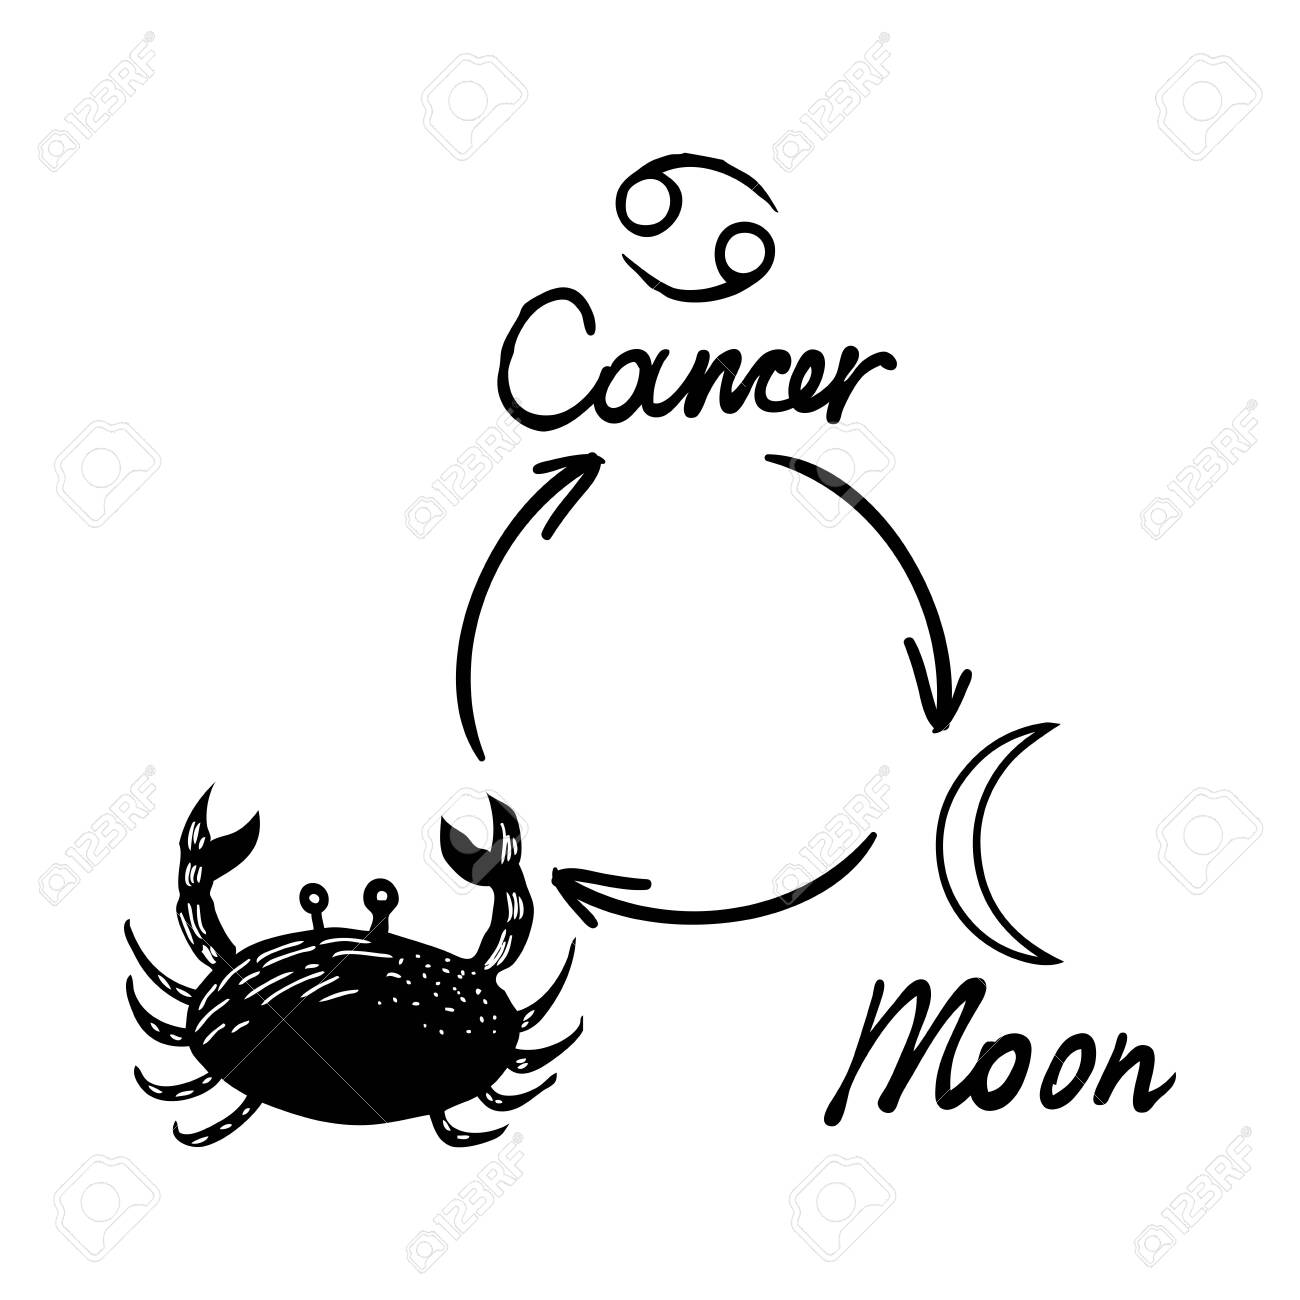 Astrology Horoscope Single Zodiac Symbol With Sign Cancer, Moon.. Royalty  Free Cliparts, Vectors, And Stock Illustration. Image 116231446.